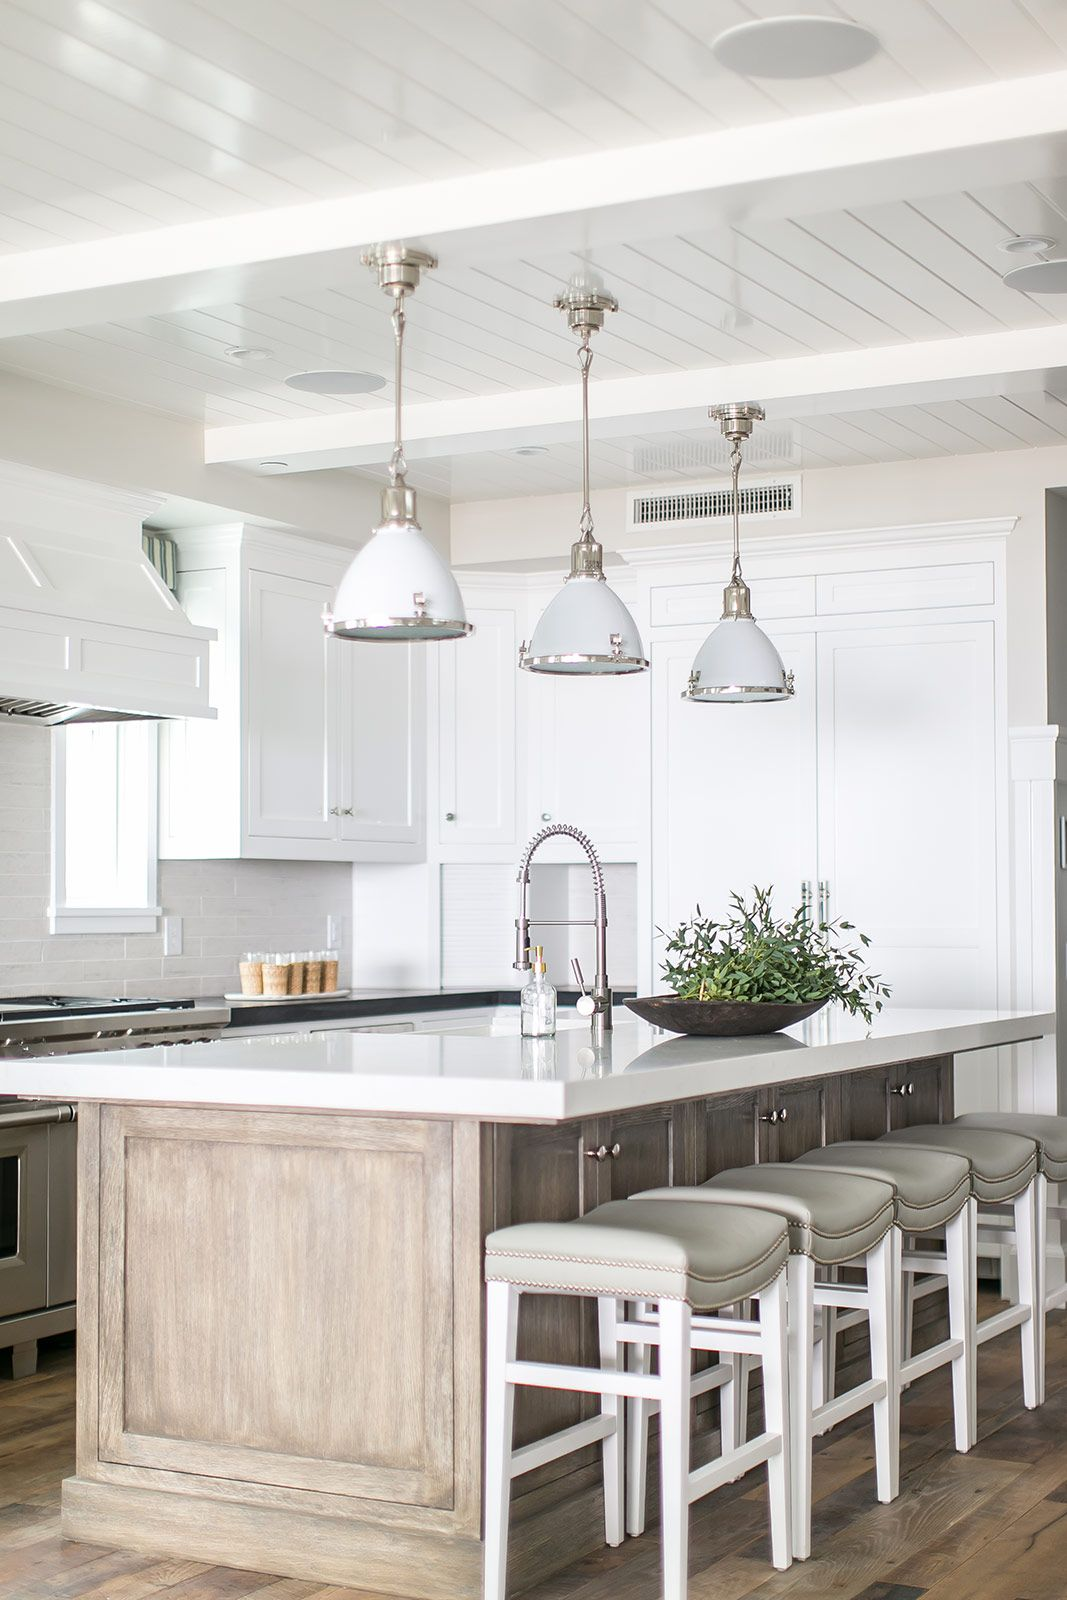 White kitchen design with light wooden cabinets and detailed